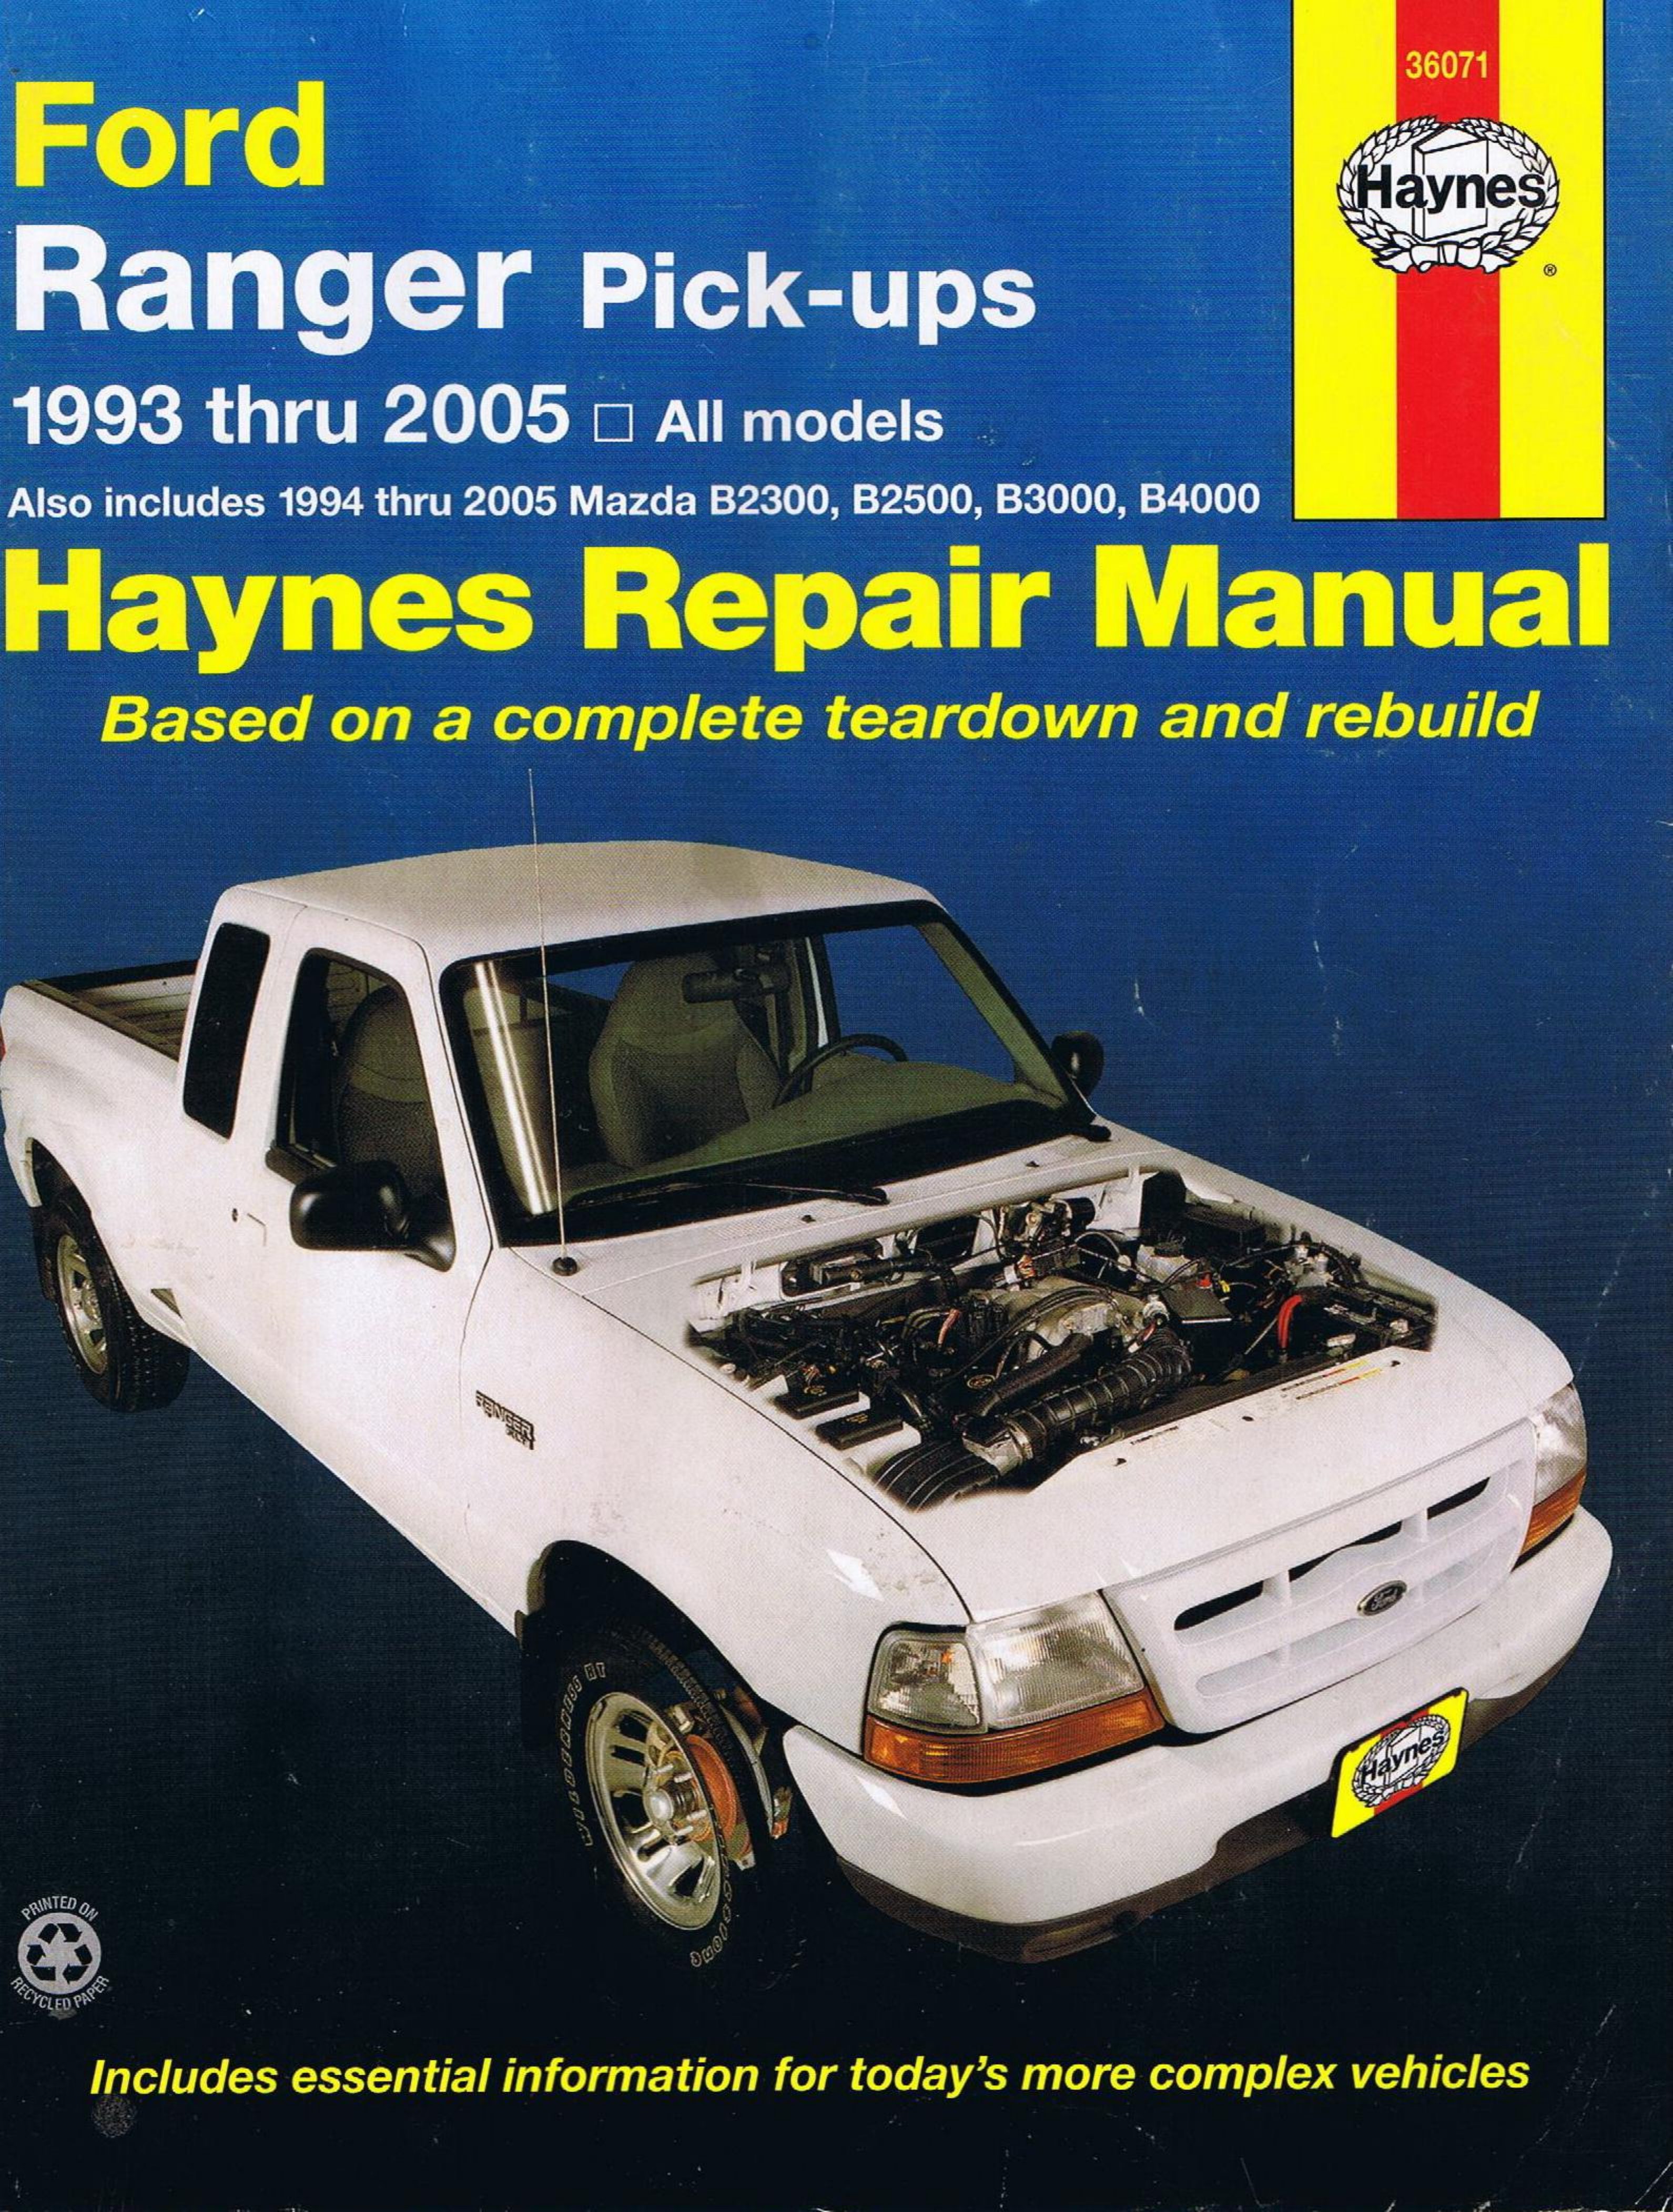 Ford Ranger 1993 2005 Service Manual PDF